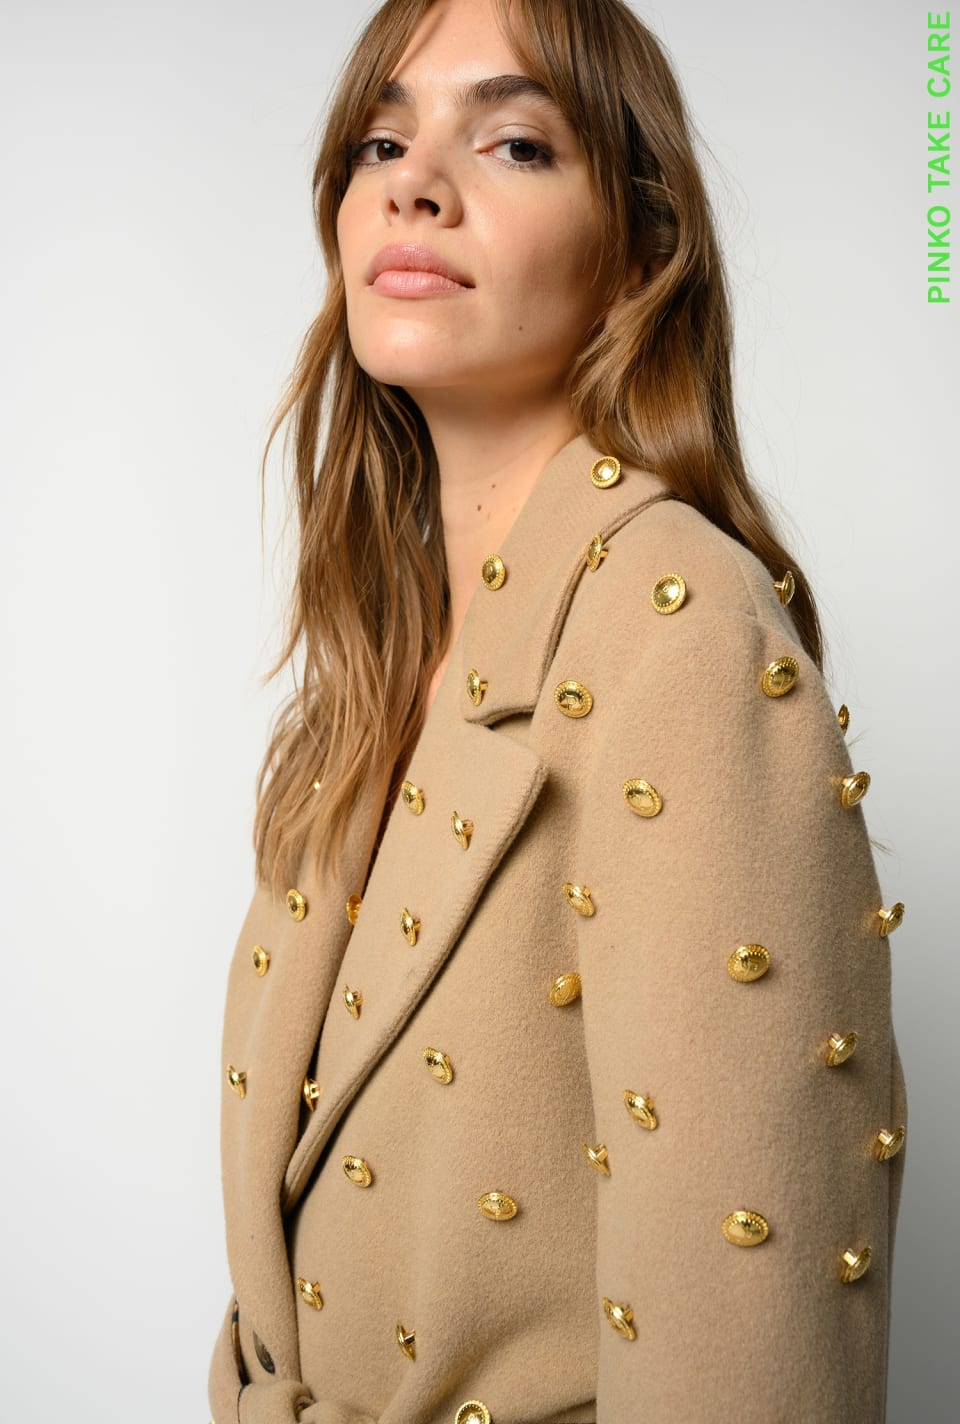 REIMAGINE wraparound coat with buttons - Pinko